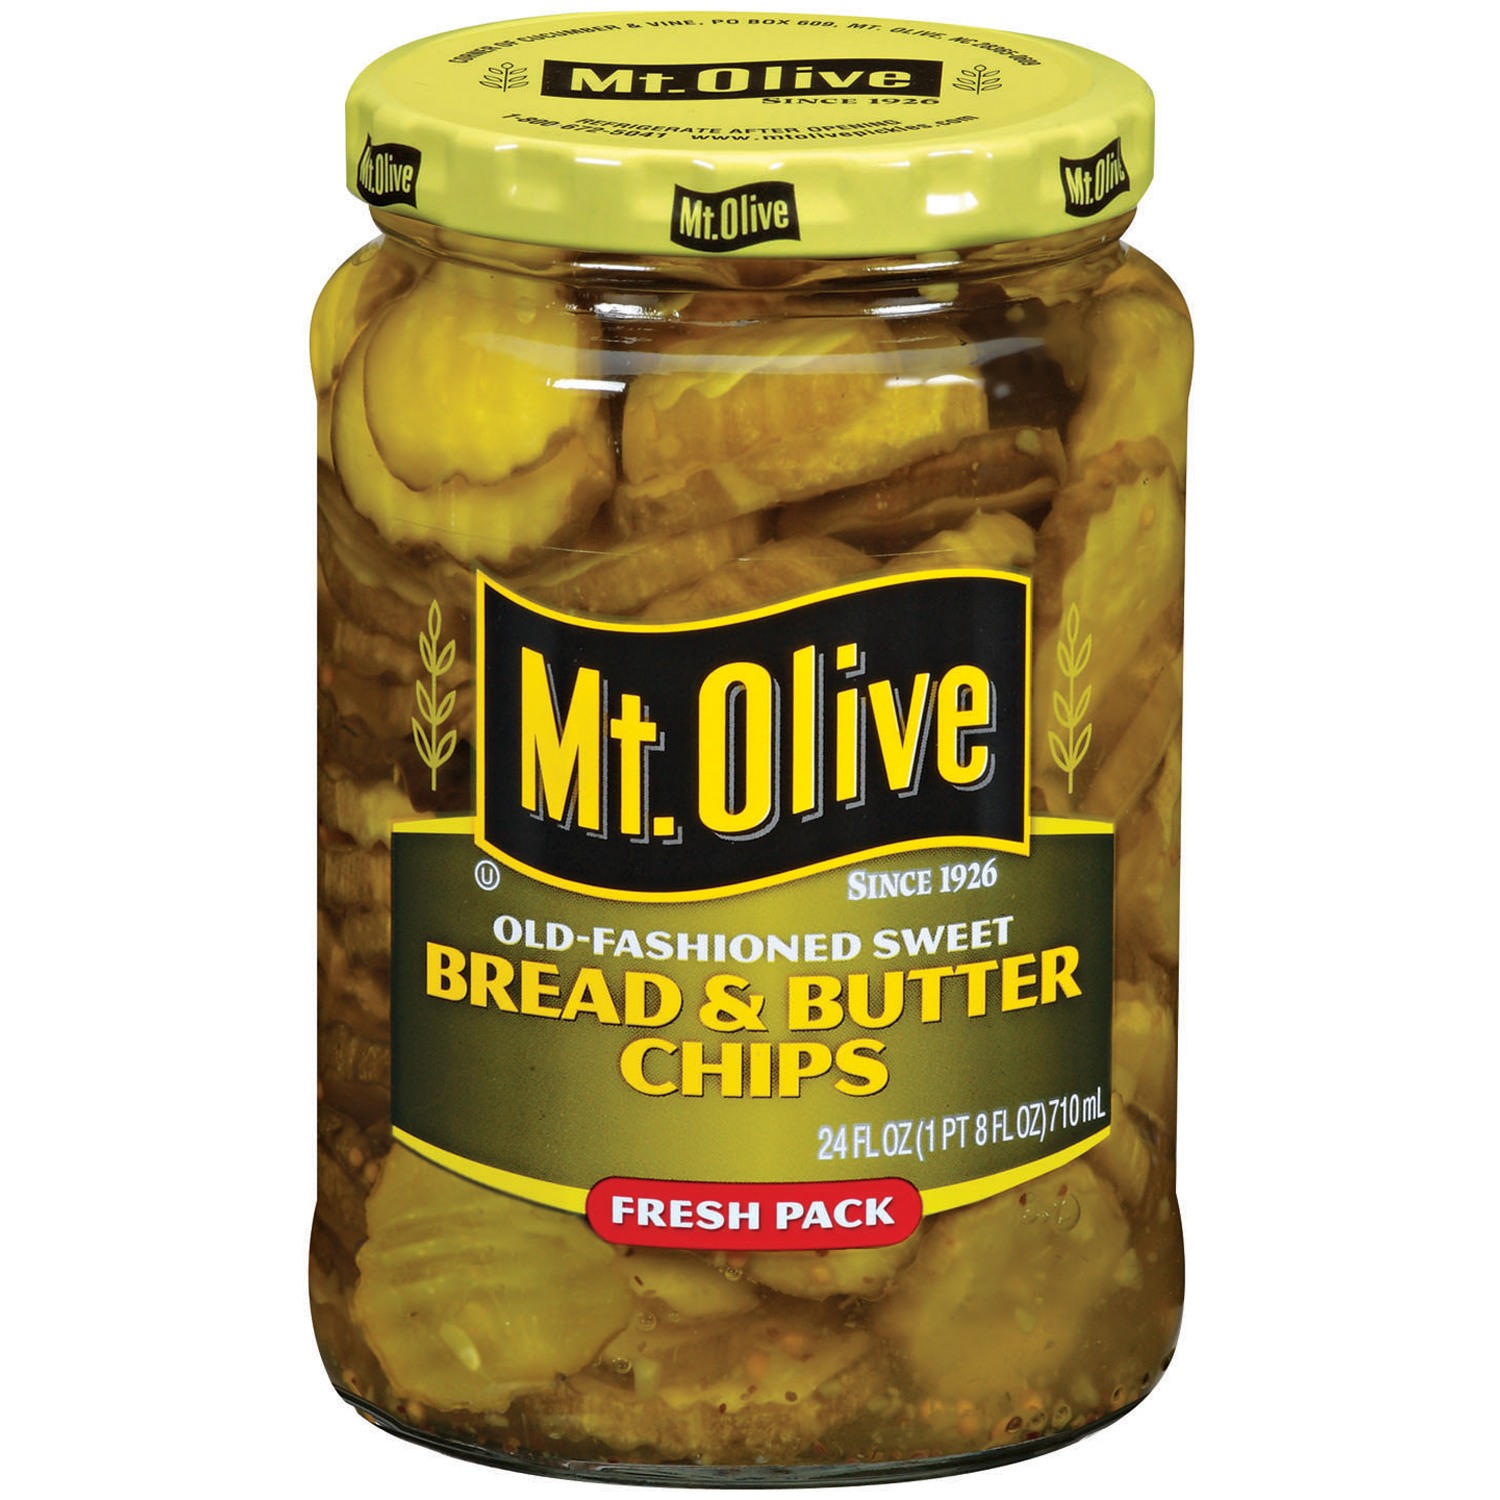 Mt. Olive Bread & Butter Chips Old Fashioned Sweet Fresh Pack Pickles 24 fl. oz. Jar